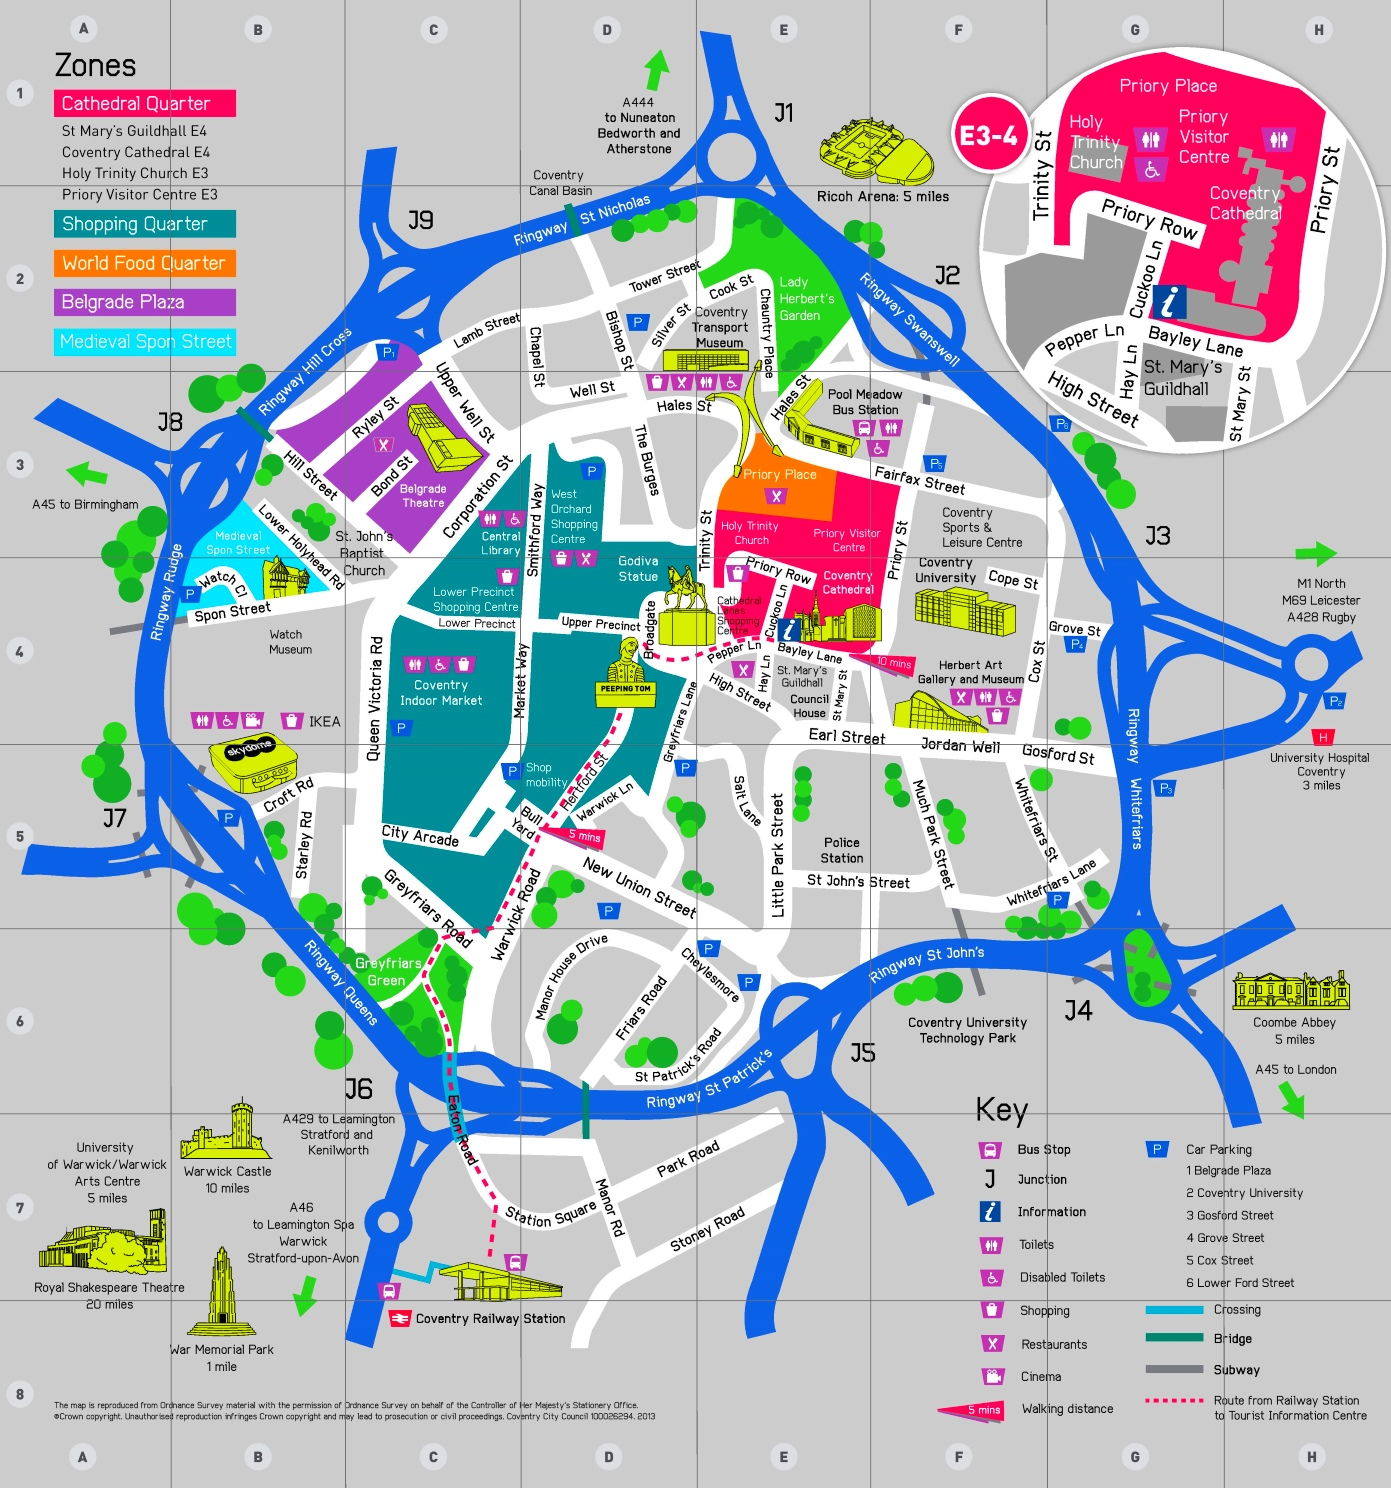 Map Of Coventry Coventry sightseeing map